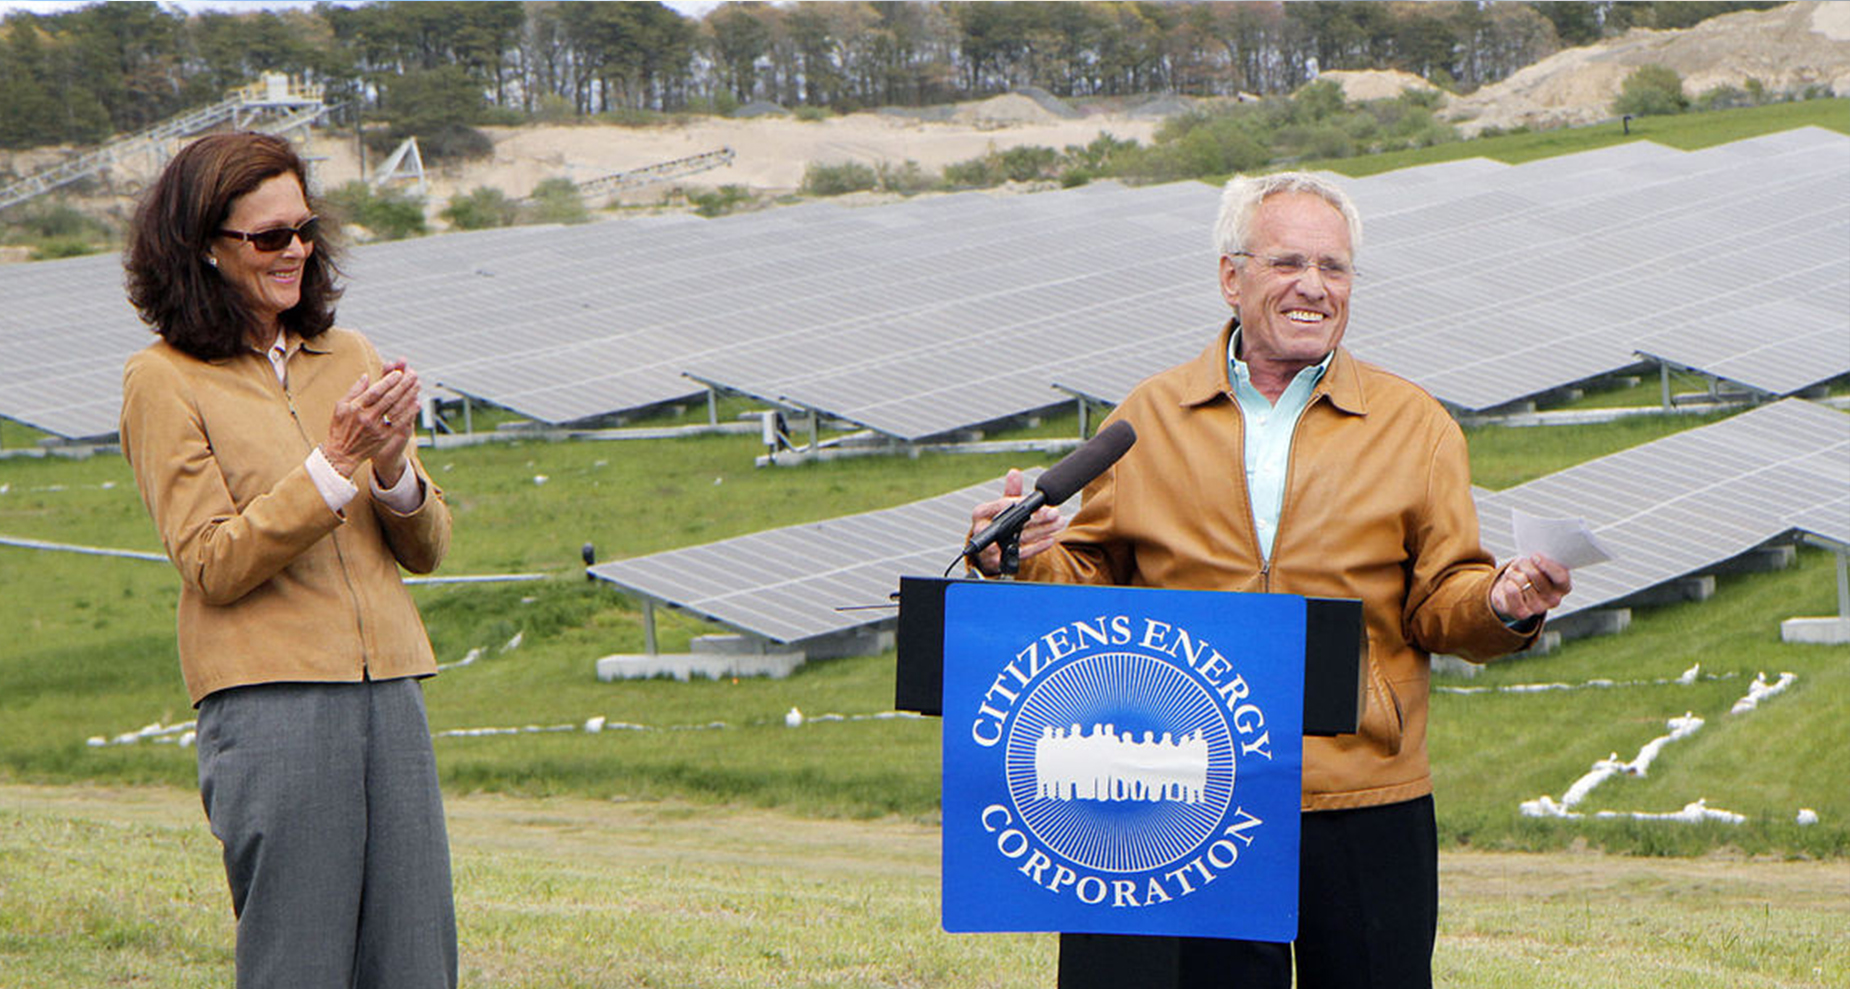 Joe Kennedy Commissions Conti's Massachusetts Solar Project